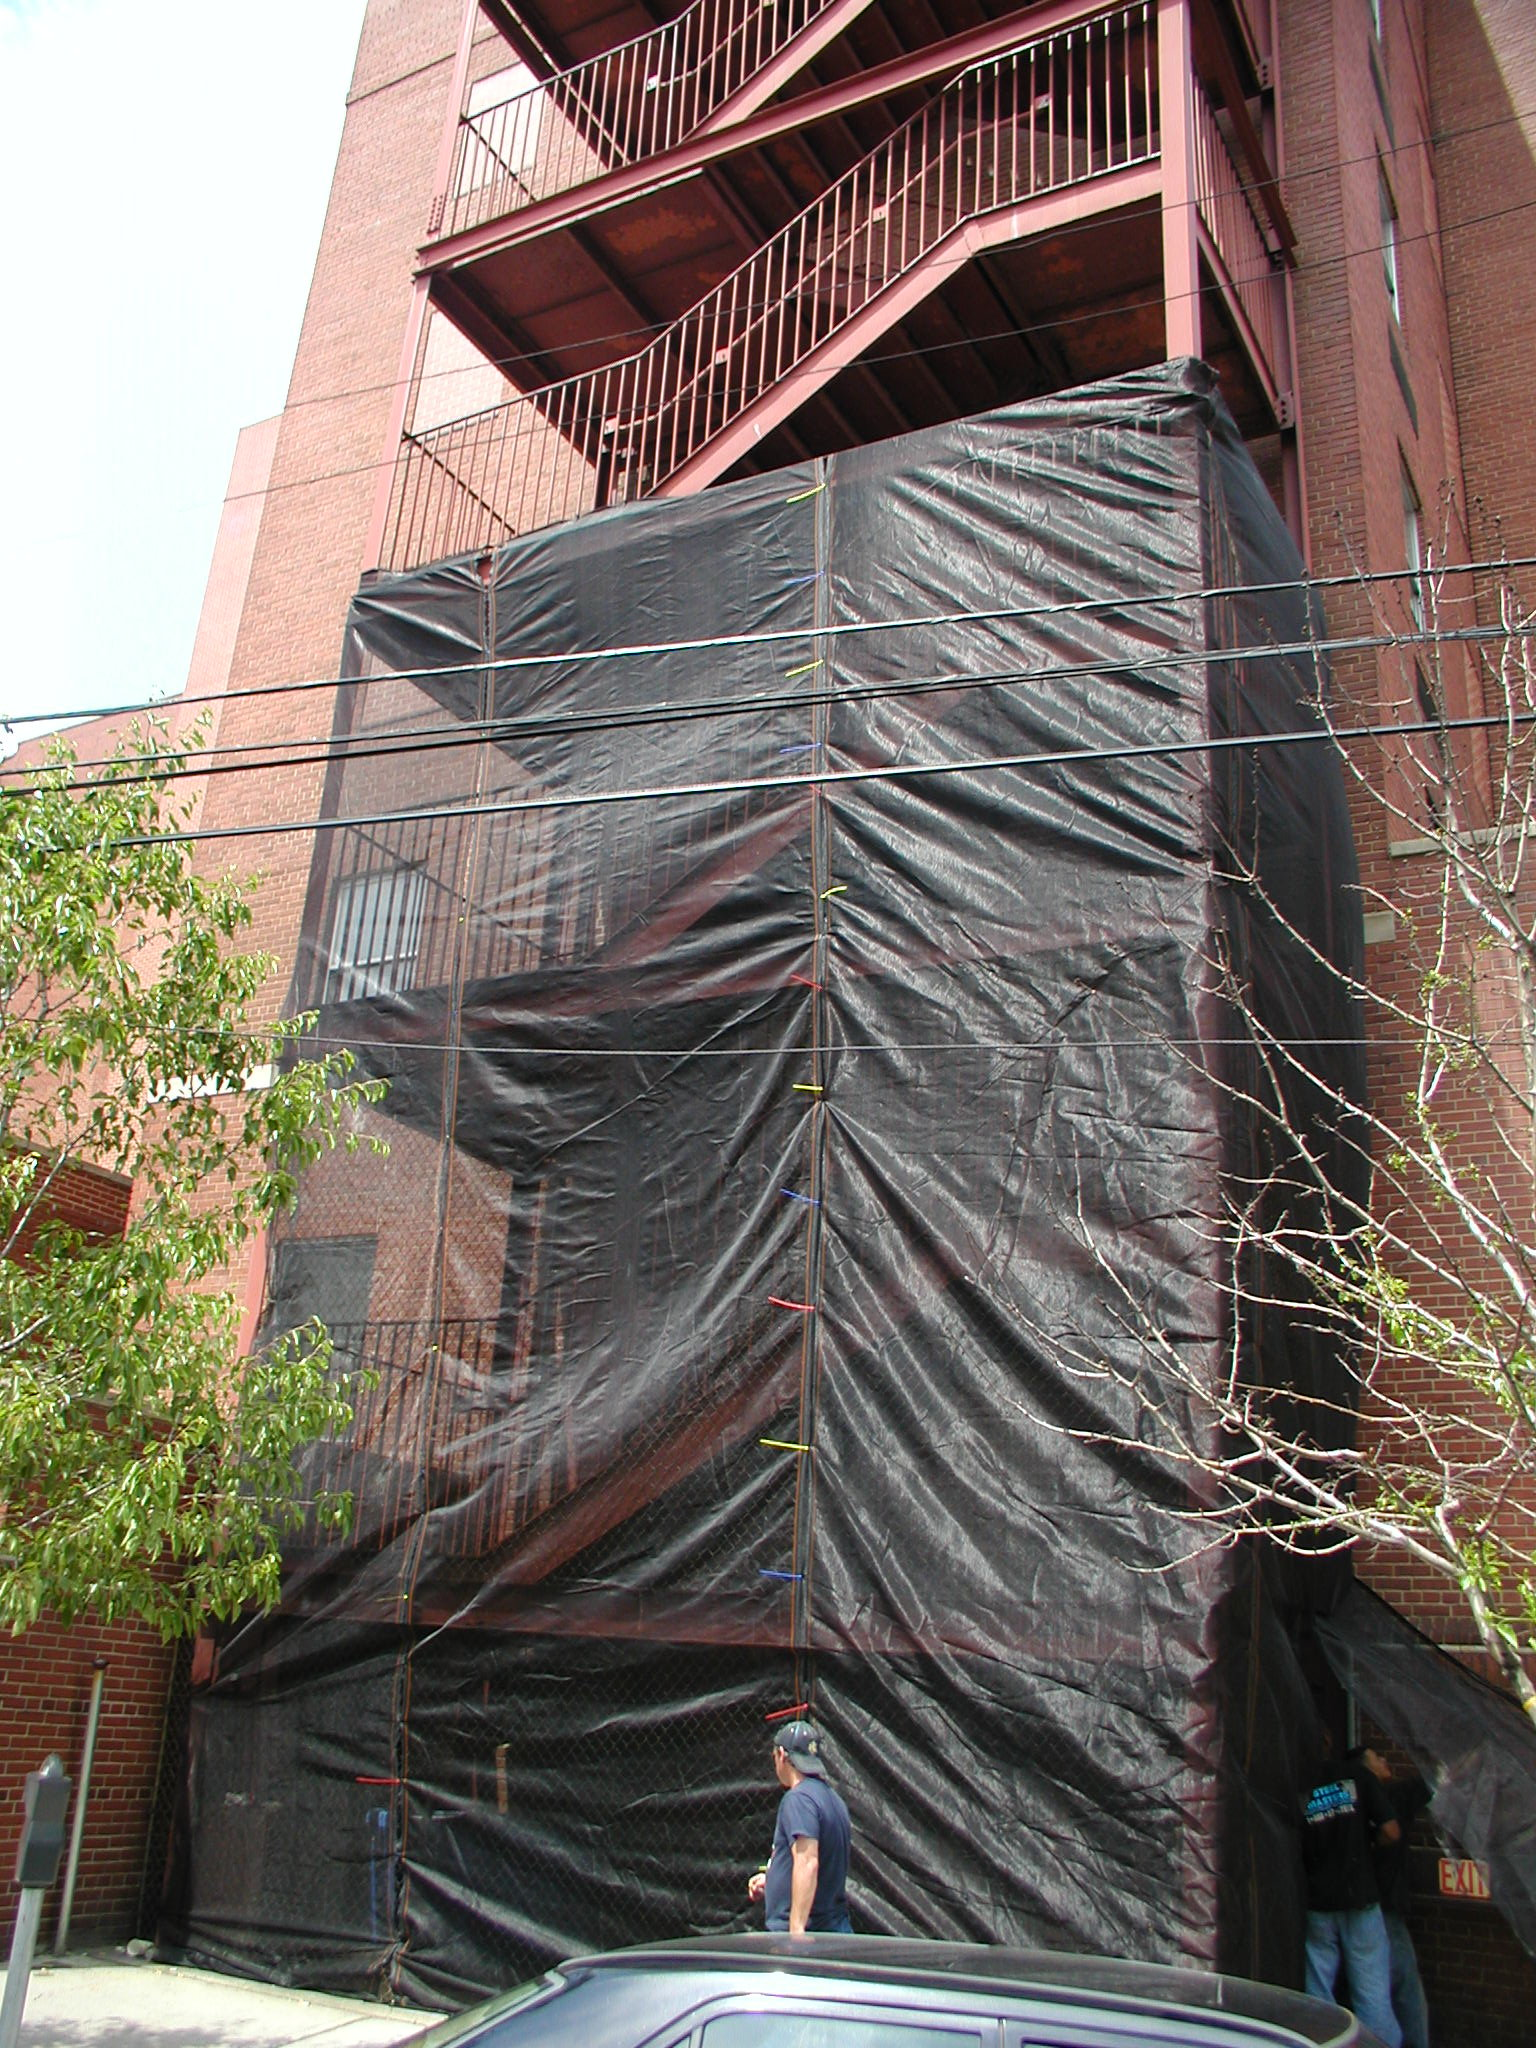 Structural commercial steel pan stair tower with structural framing, guardrail, stairs + landing, and protective debris mesh. (Manhattan, NY)